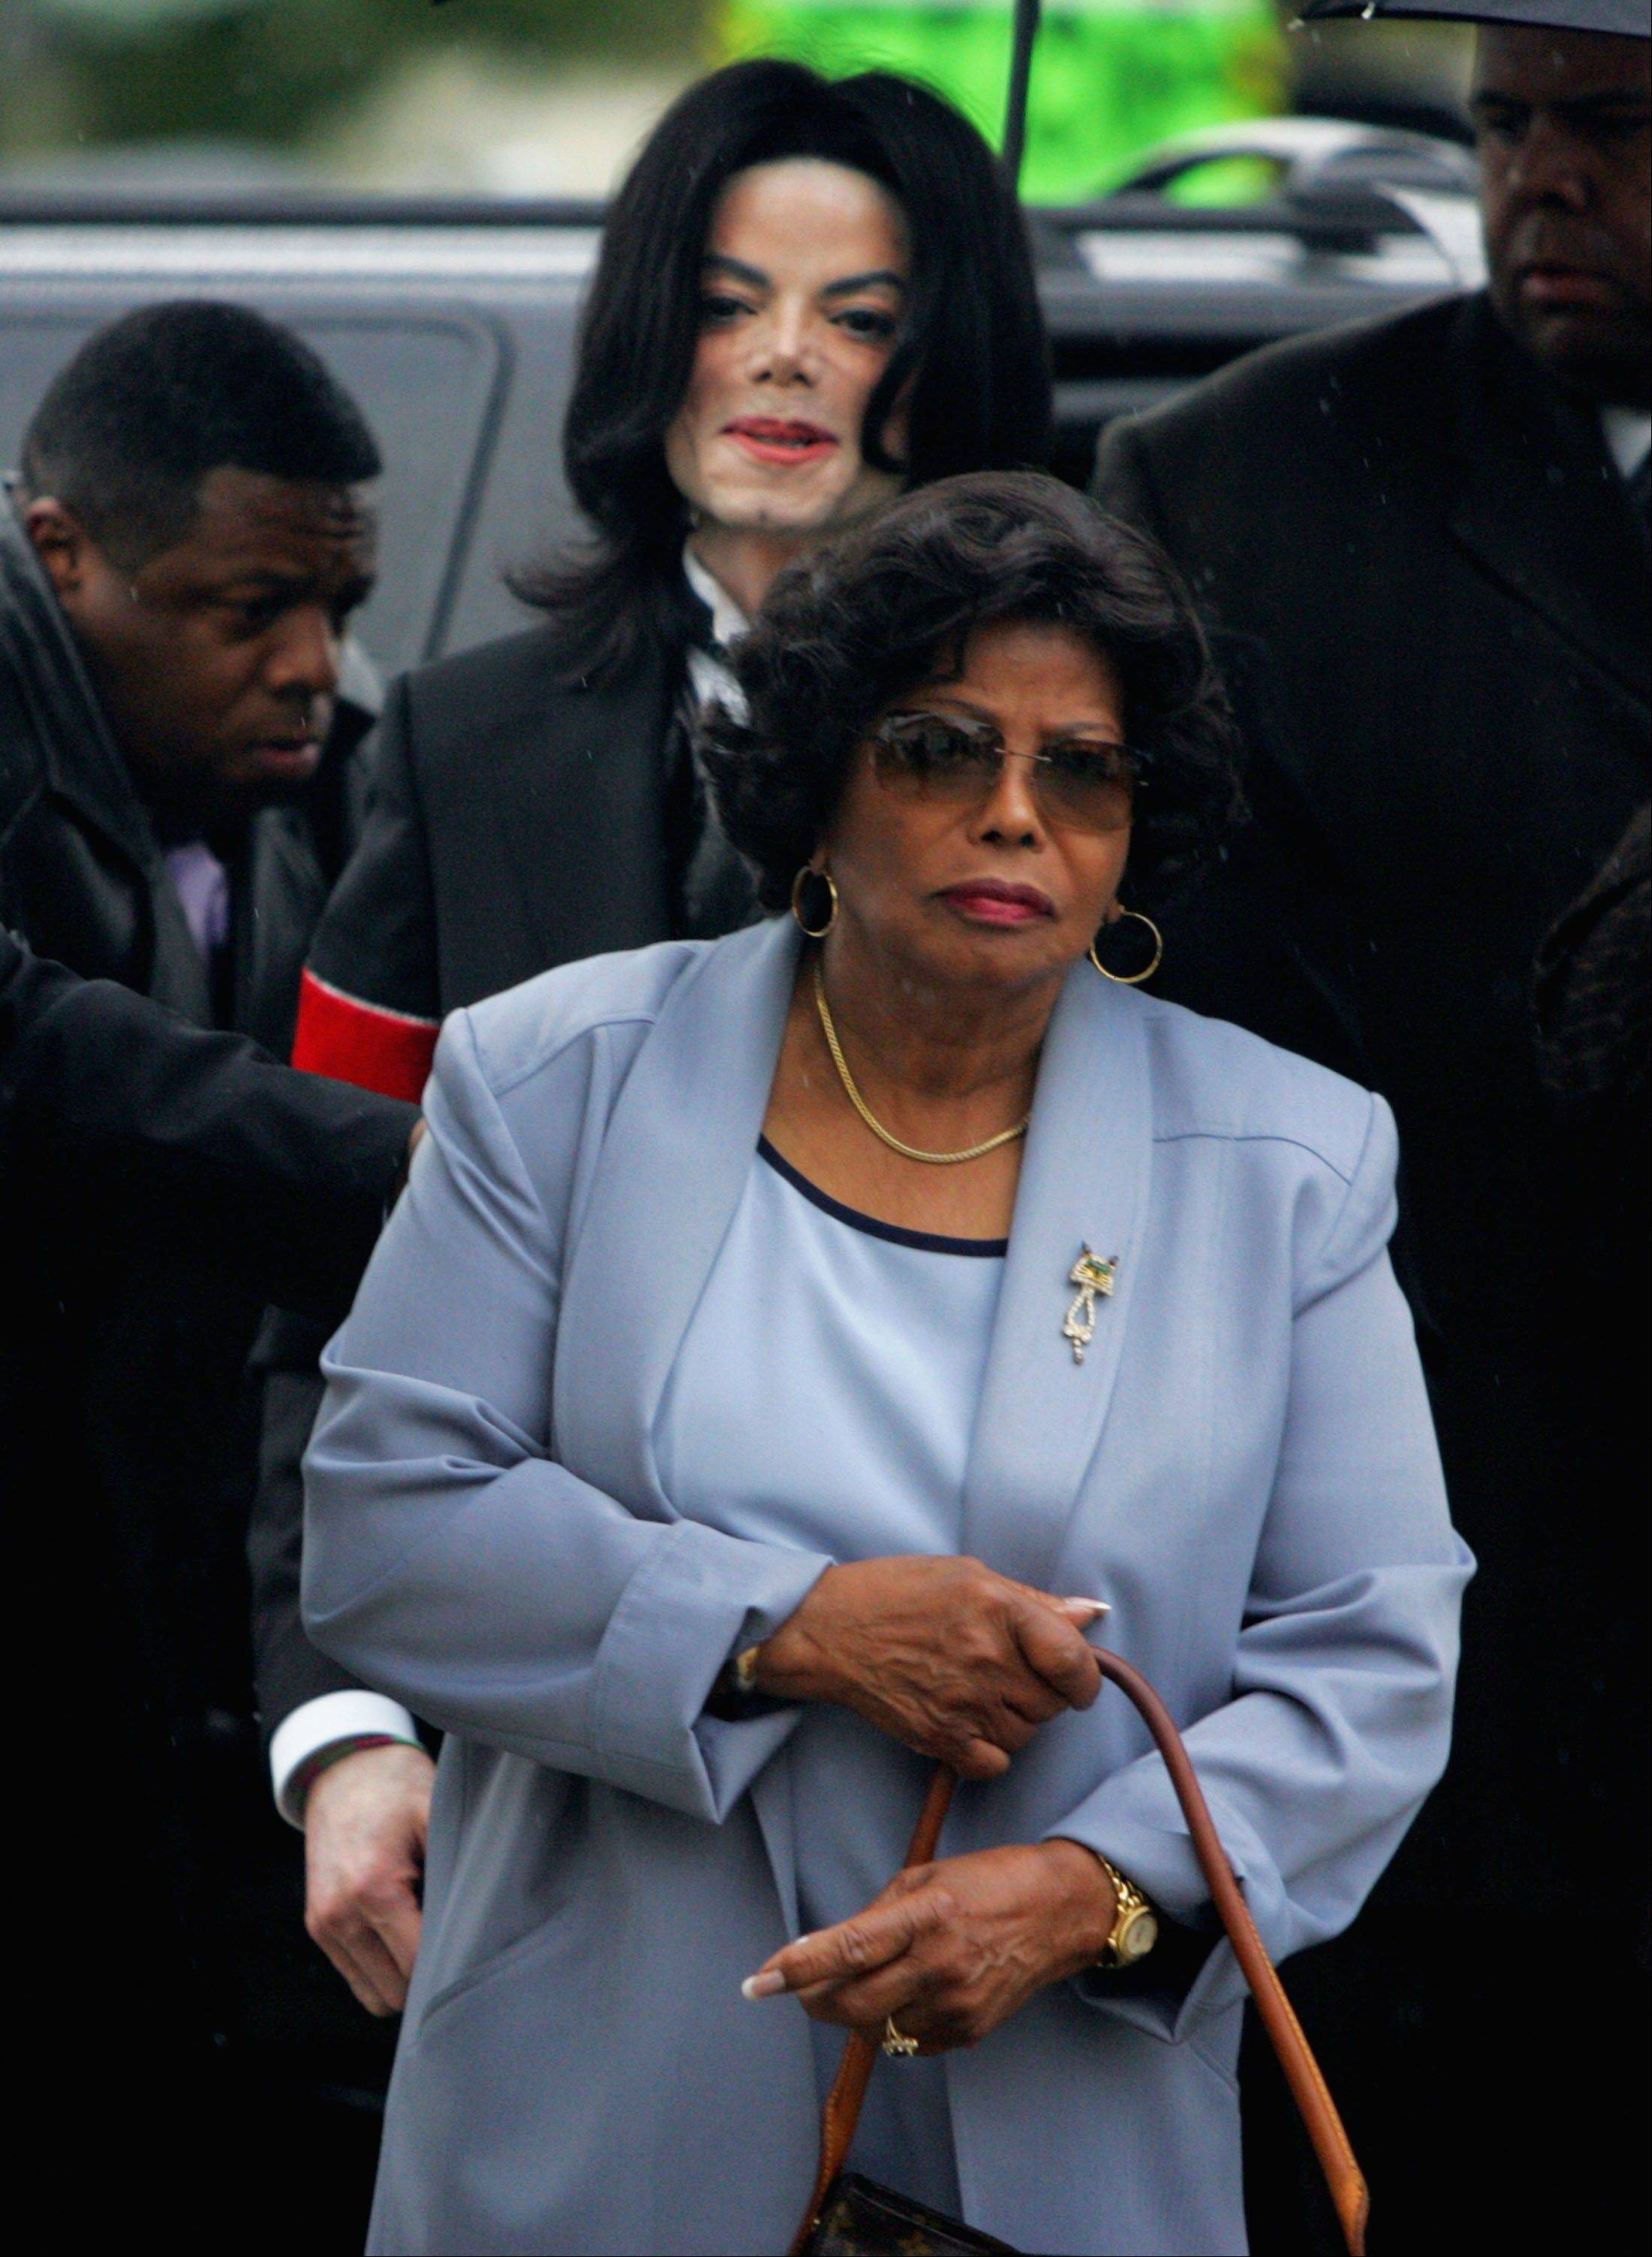 Deputies responded to Katherine Jackson�s home in Calabasas, Calif., on Monday after a family disturbance was reported. There were no arrests made, but deputies determined that two people had been involved in a physical altercation at the house and a report on a possible battery case was taken, officials said.